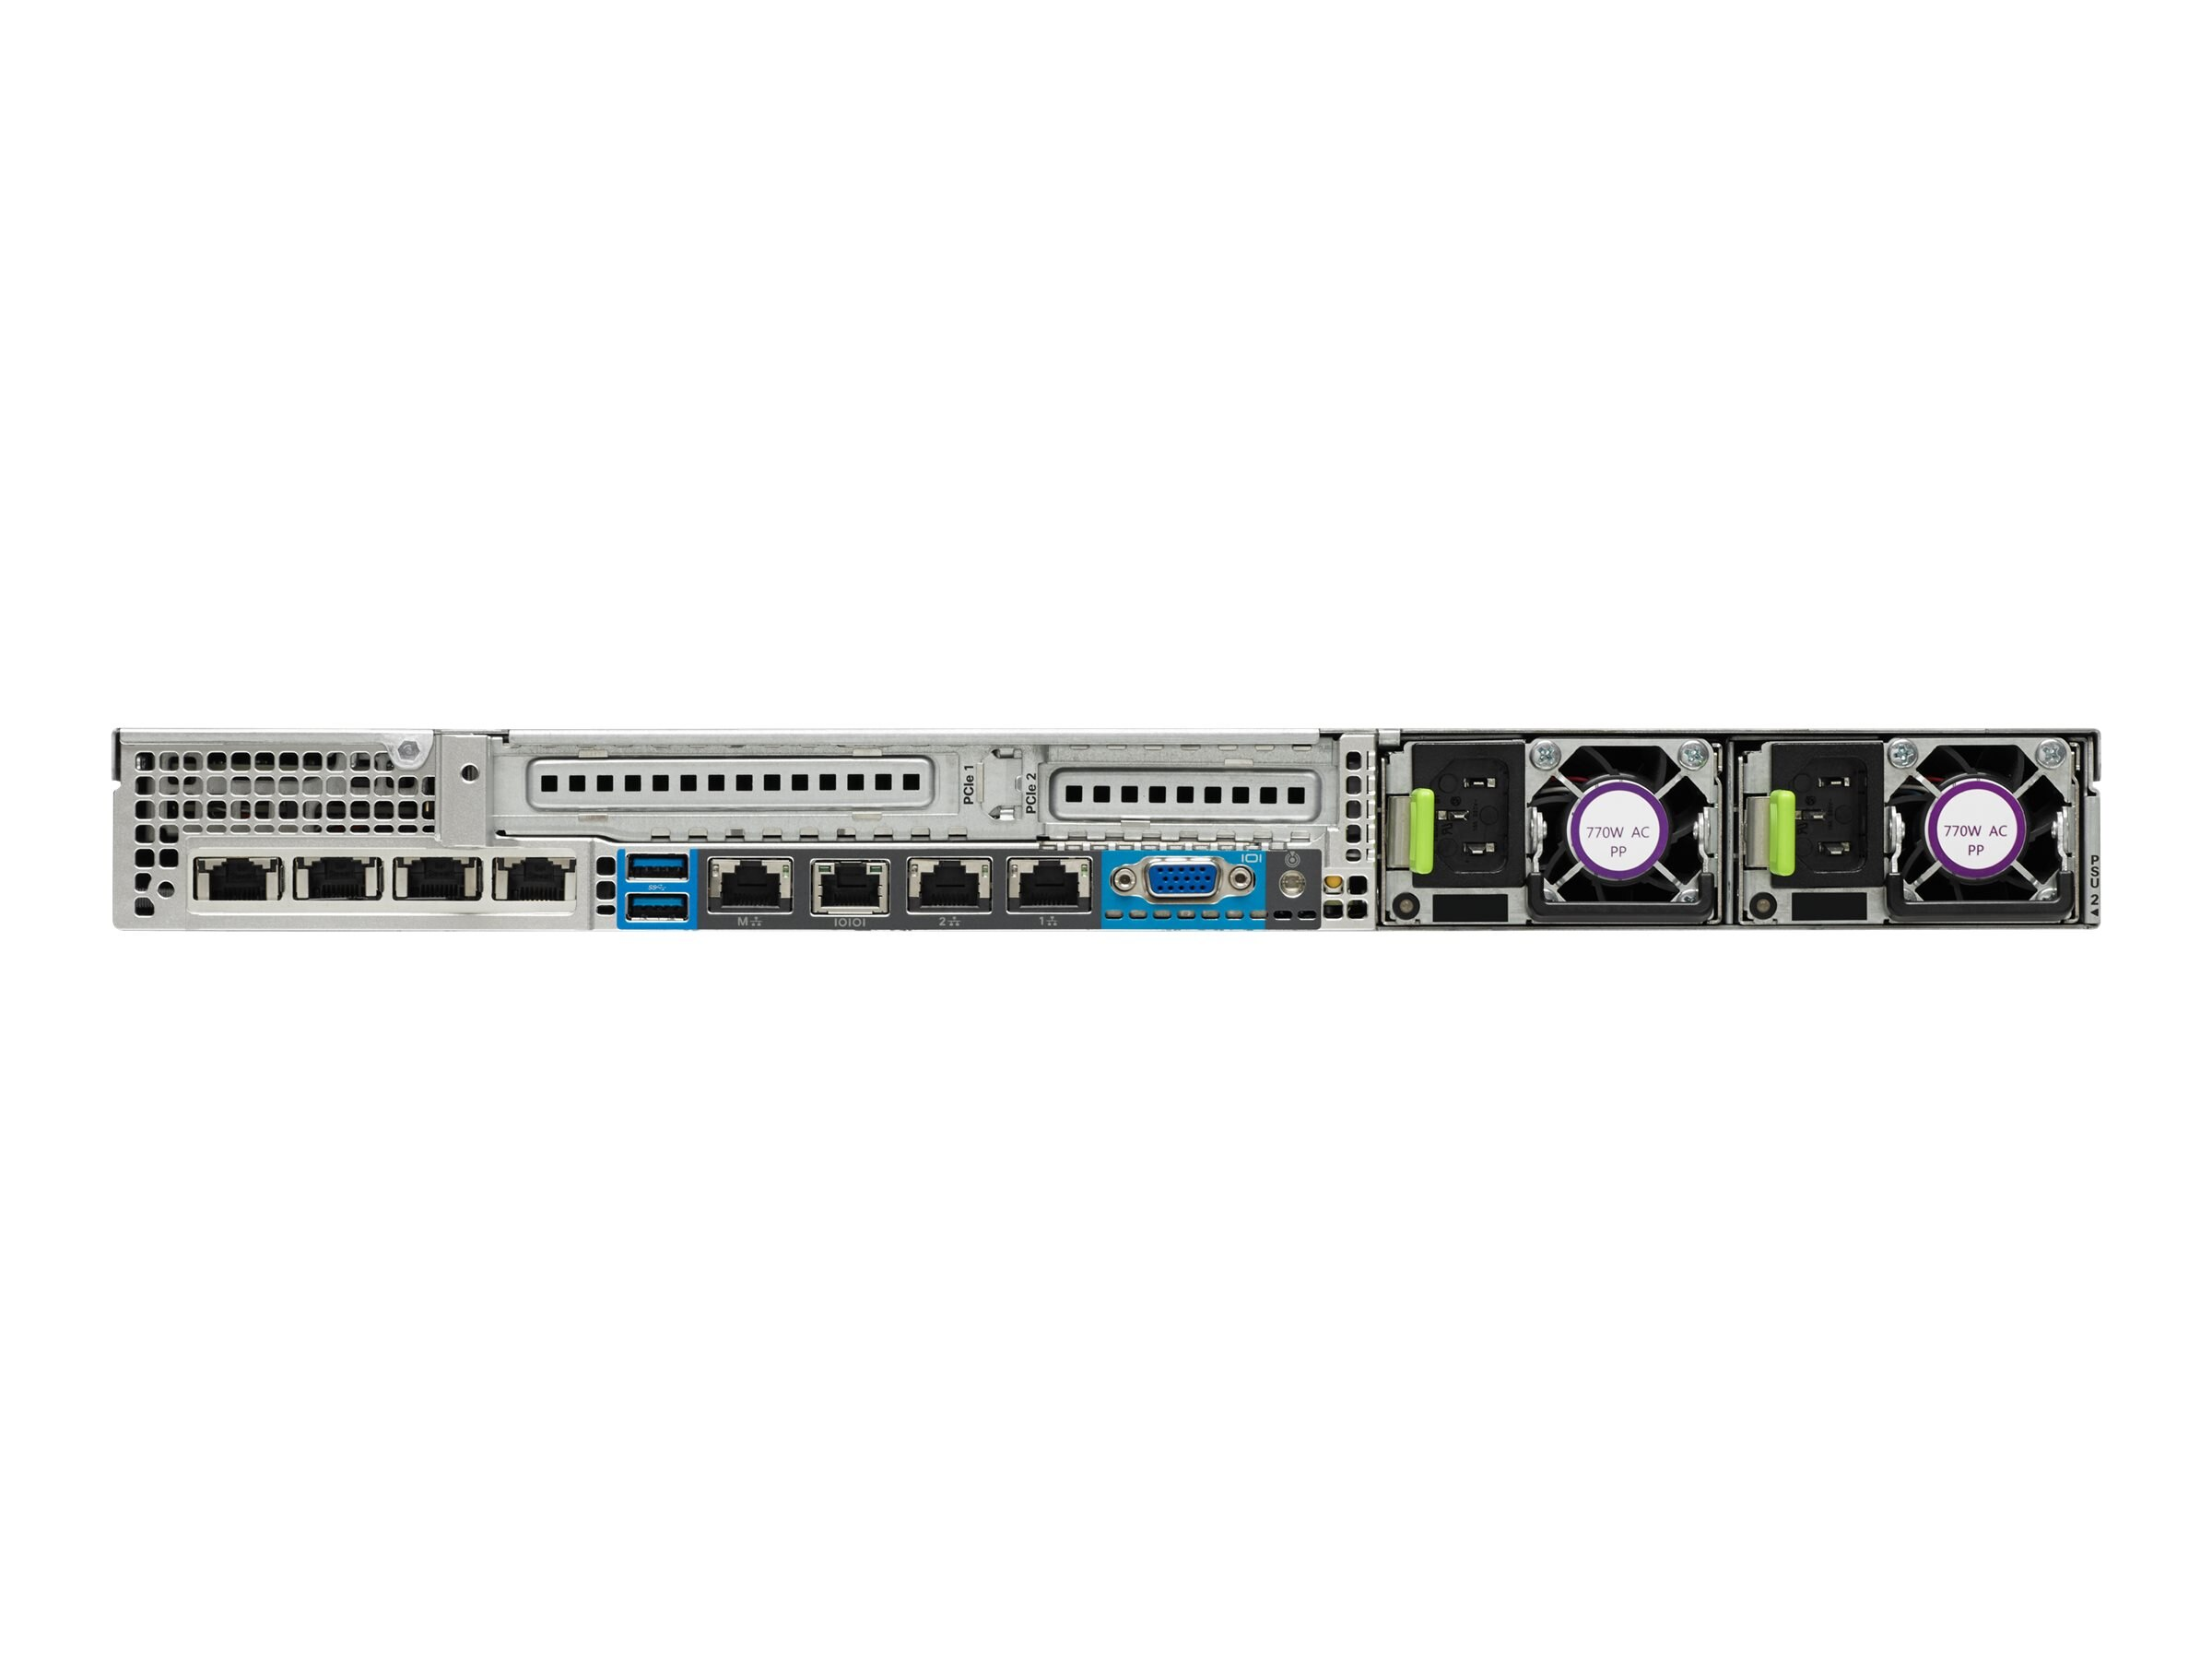 Cisco UCS-SPR-C220M4-BS1 Image 4